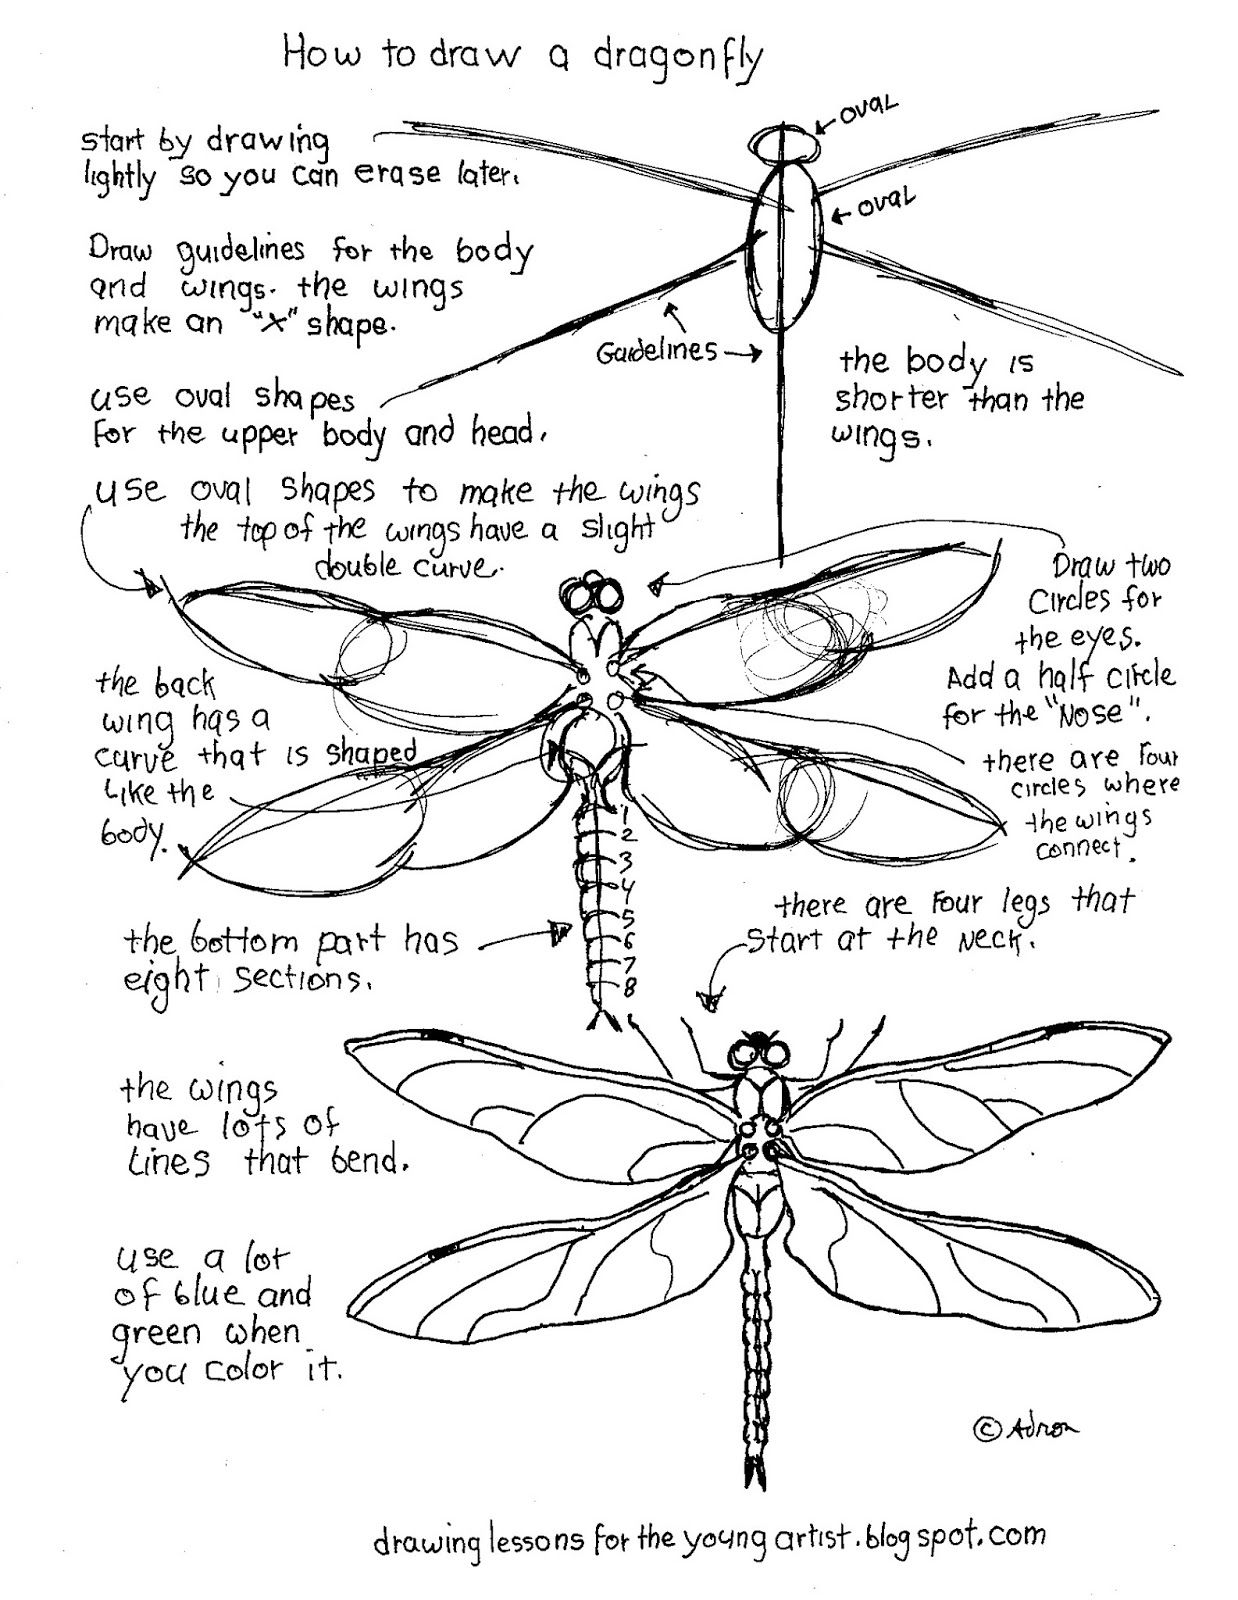 How To Draw Worksheets For The Young Artist Printable How To Draw A Dragonfly Worksheet There